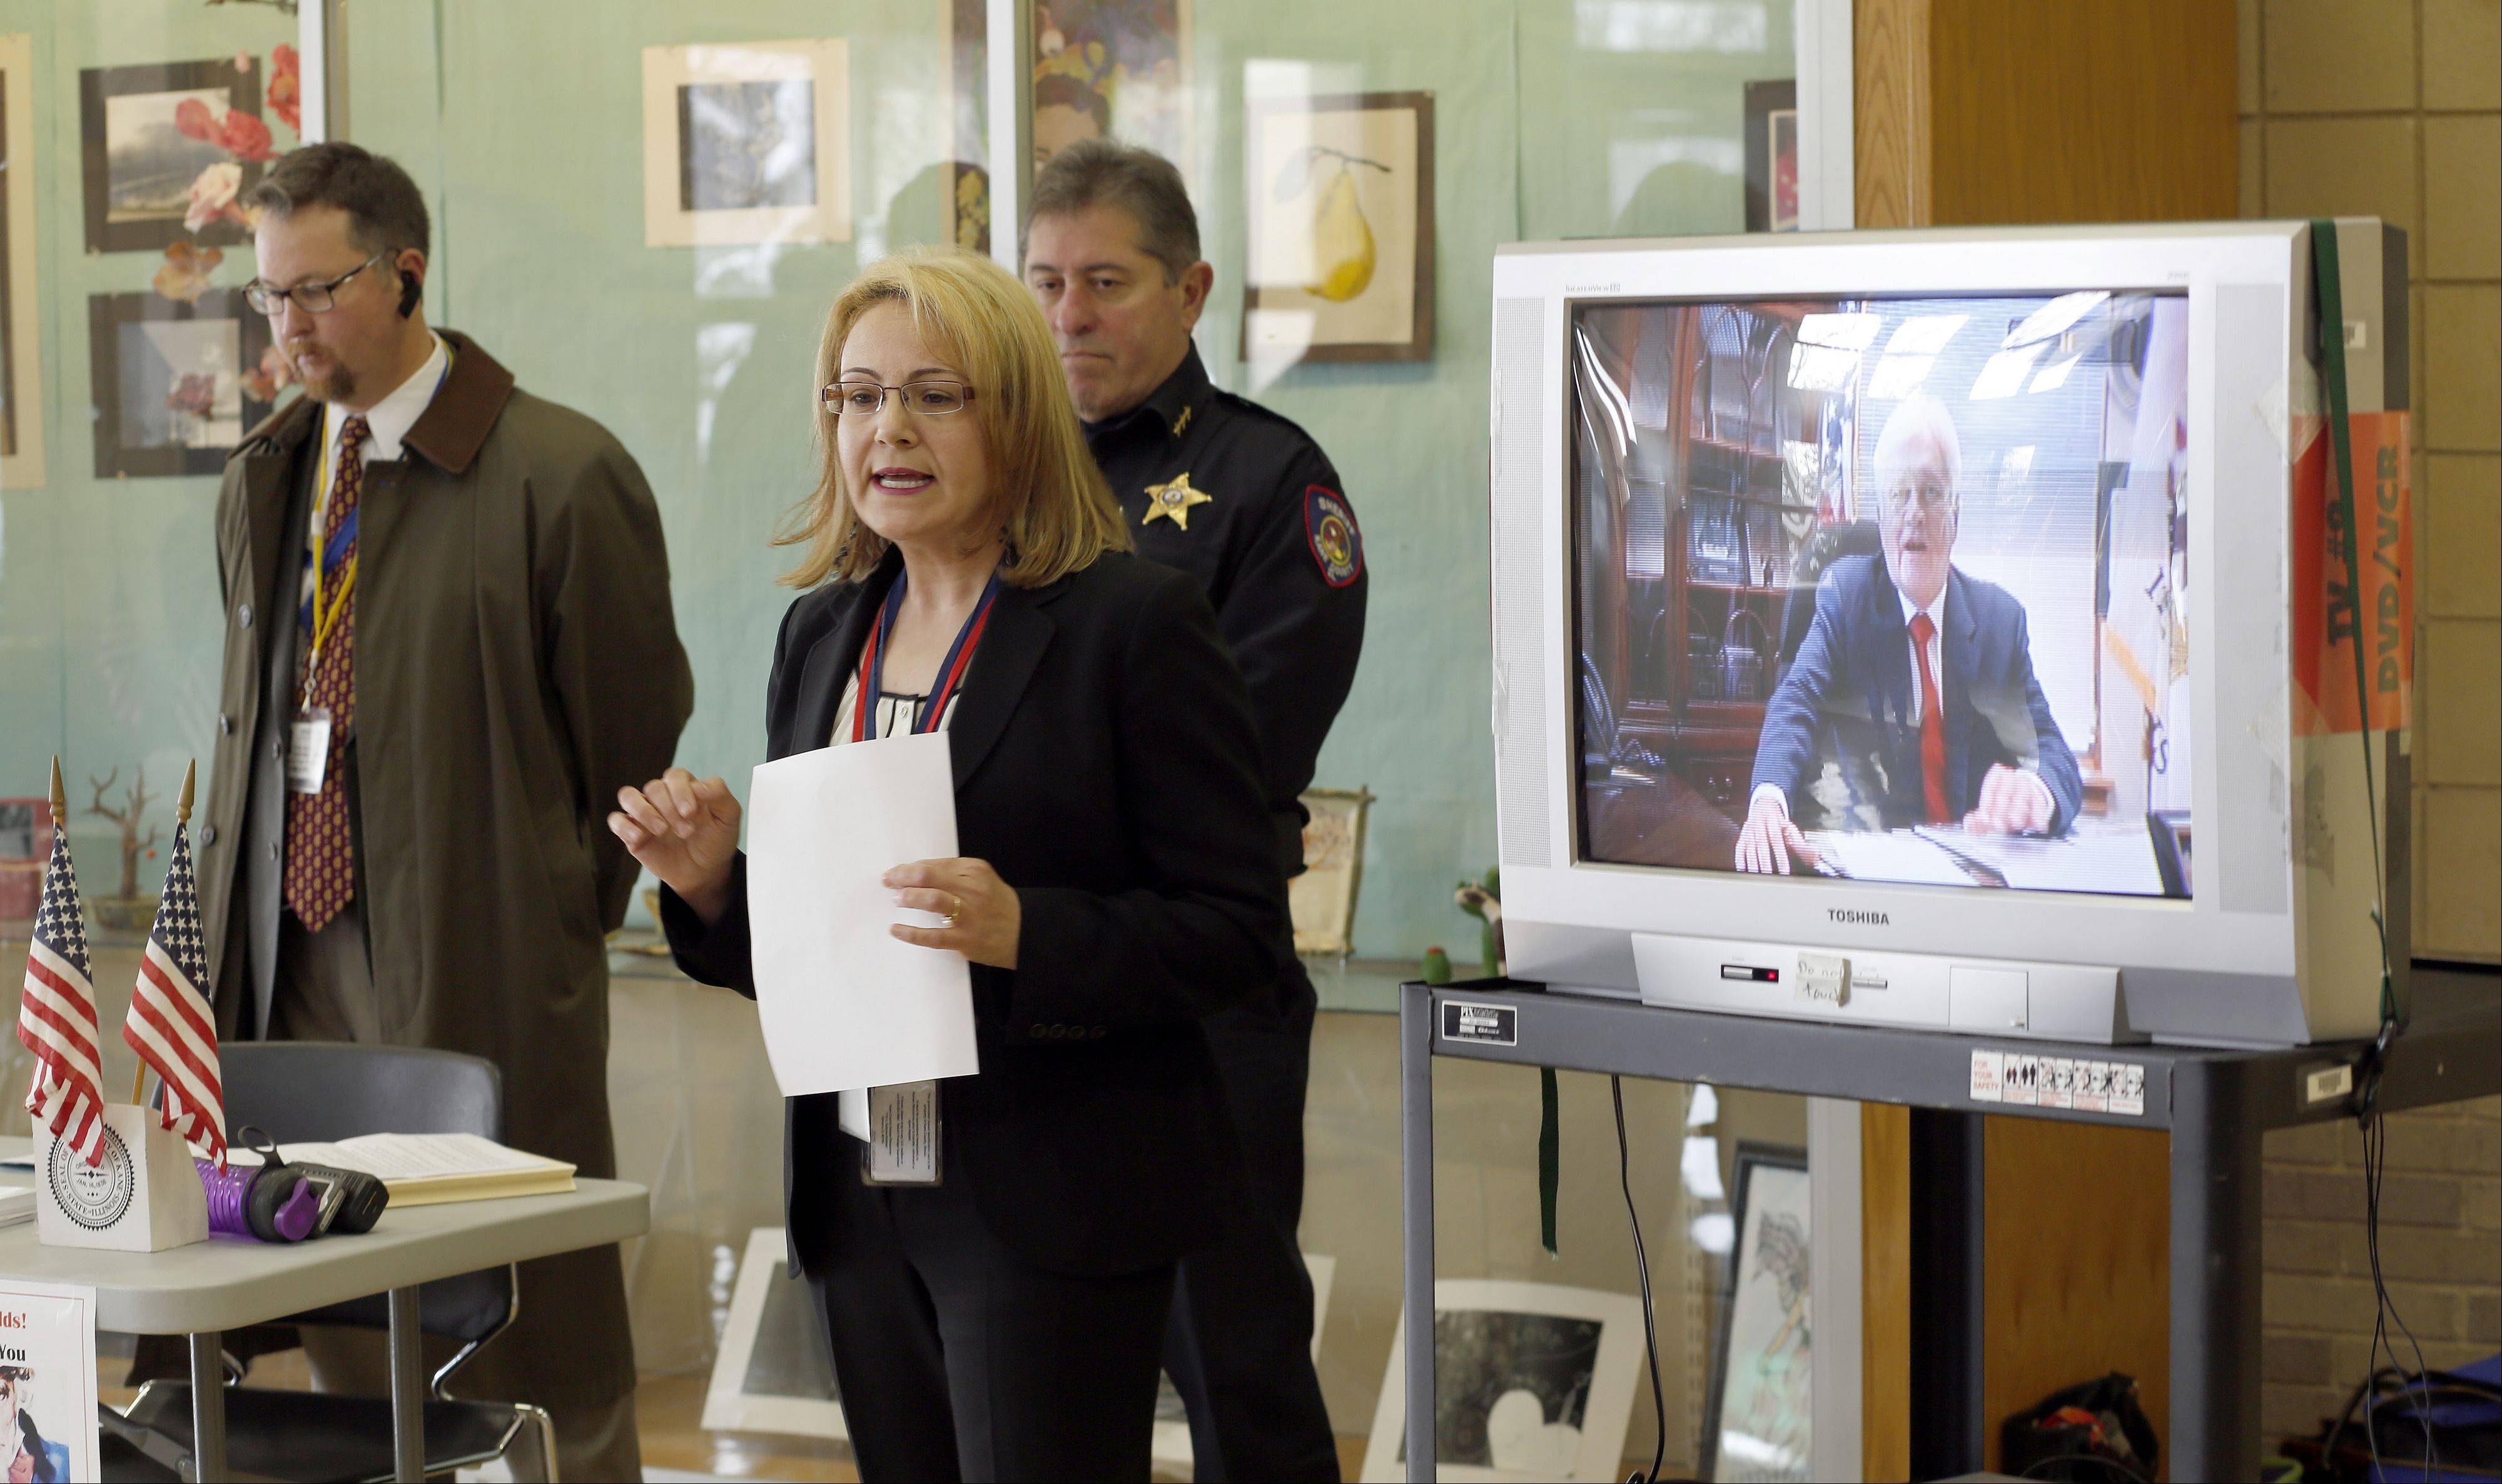 Suzanne Fahnestock, Kane County director of elections, represented Kane County Clerk Jack Cunningham, who appeared via video, as they unveiled a program Wednesday at Batavia High School to comply with a new law allowing 17-year-olds to register to vote.